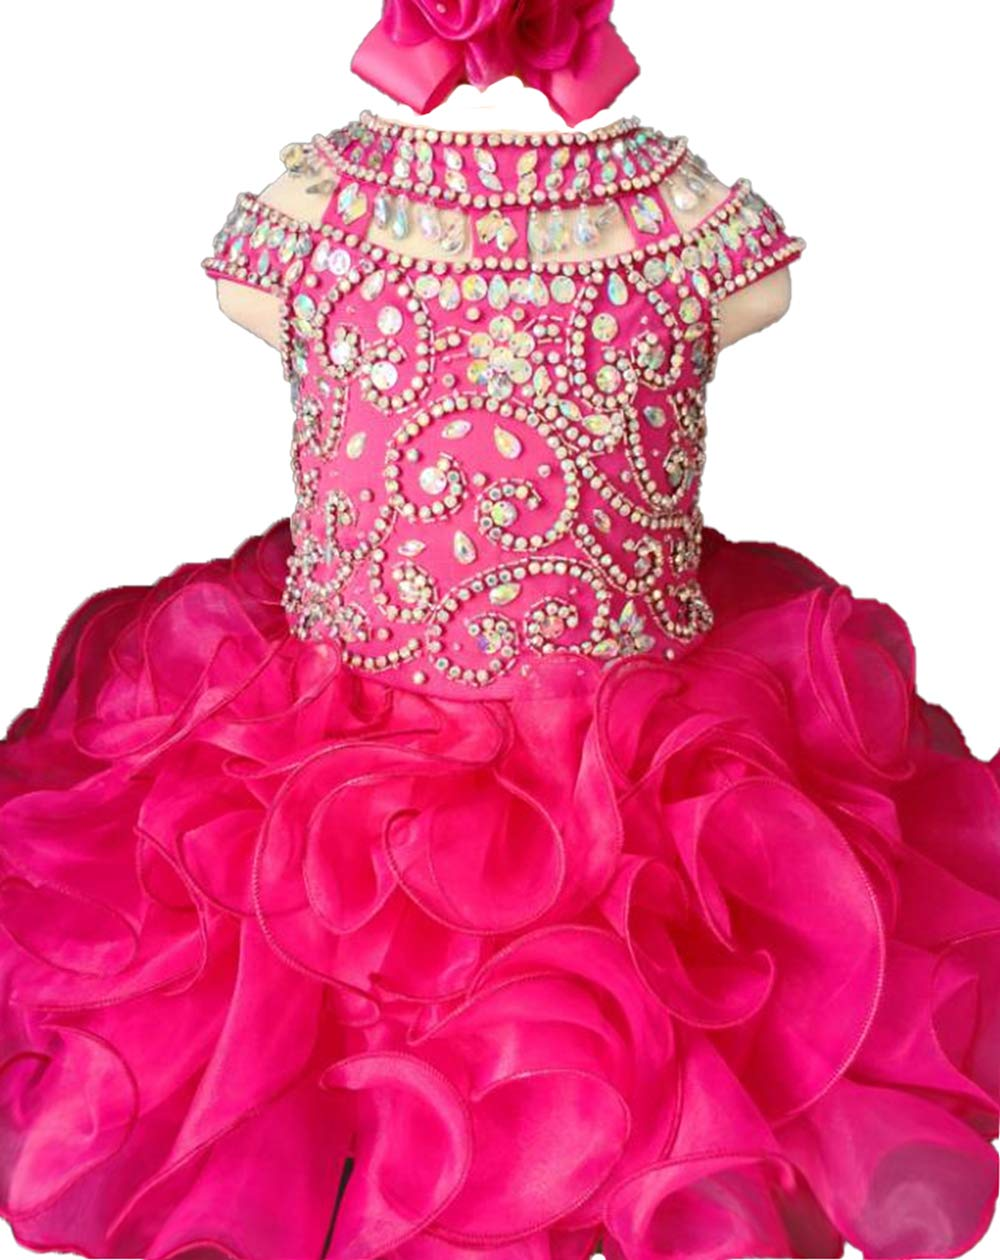 Jenniferwu Infant Toddler Baby Newborn Little Girl's Pageant Party Birthday Dress G225-4 Fuchsia Size 5T